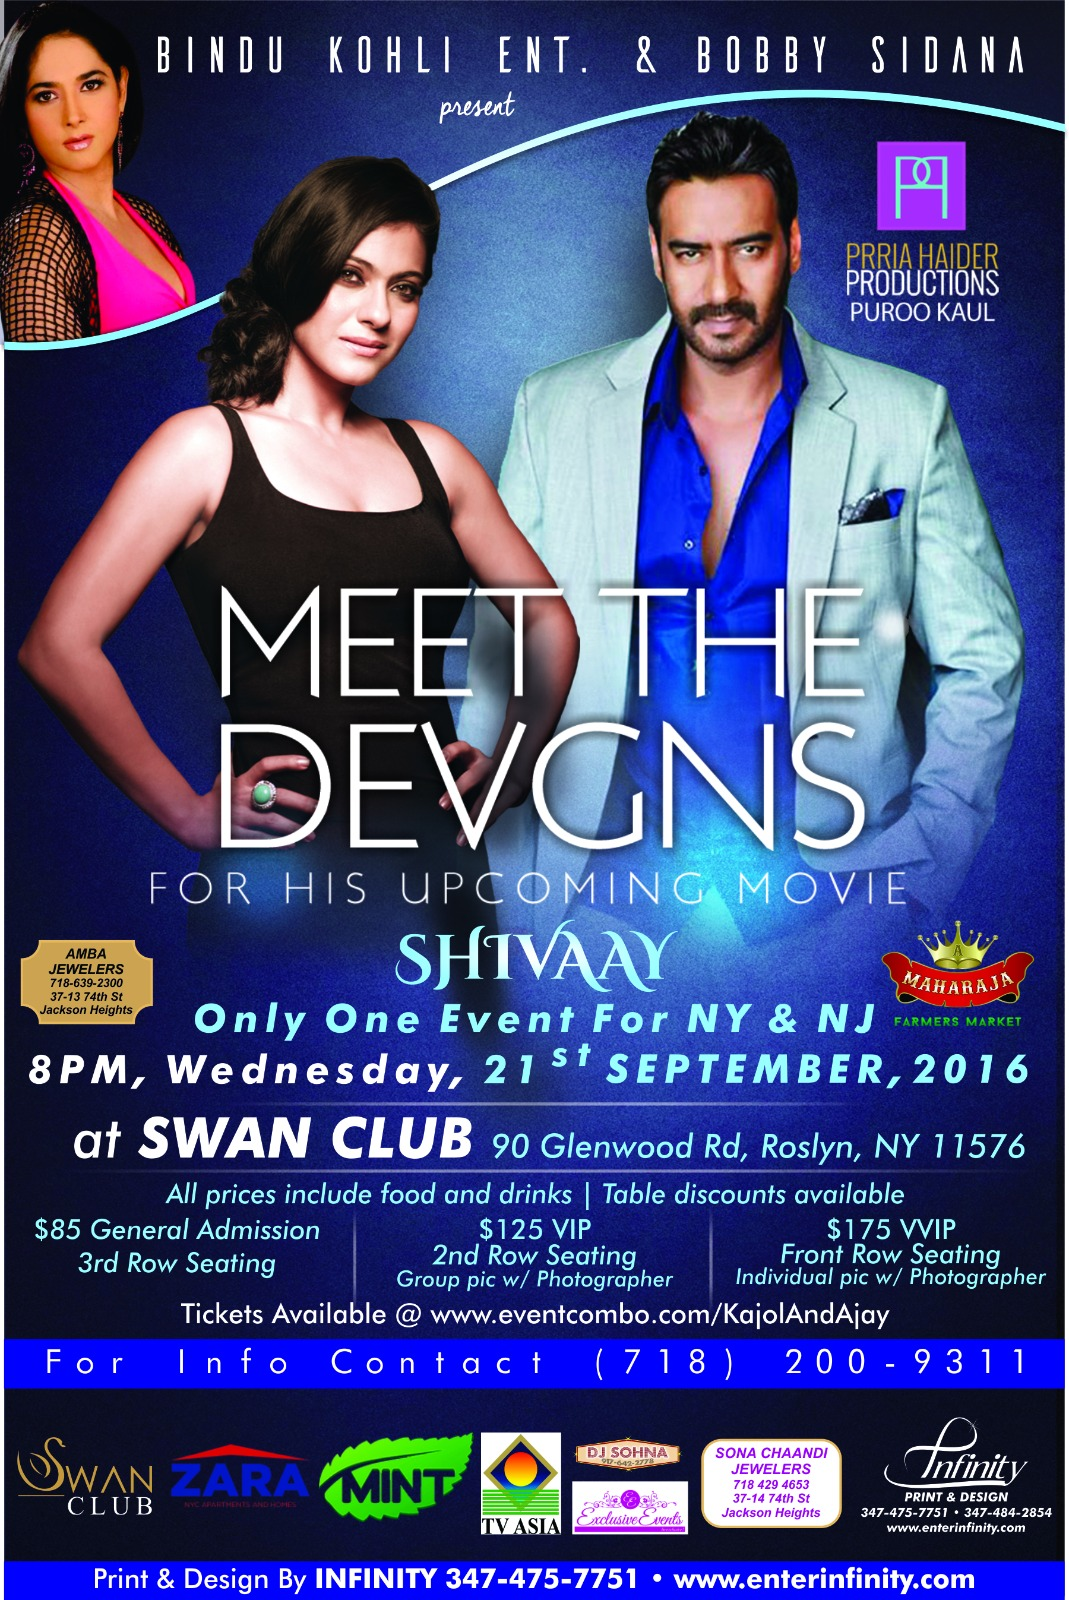 Meet the Devgns - Kajol and Ajay Devgn LIVE Meet and Greet in New York